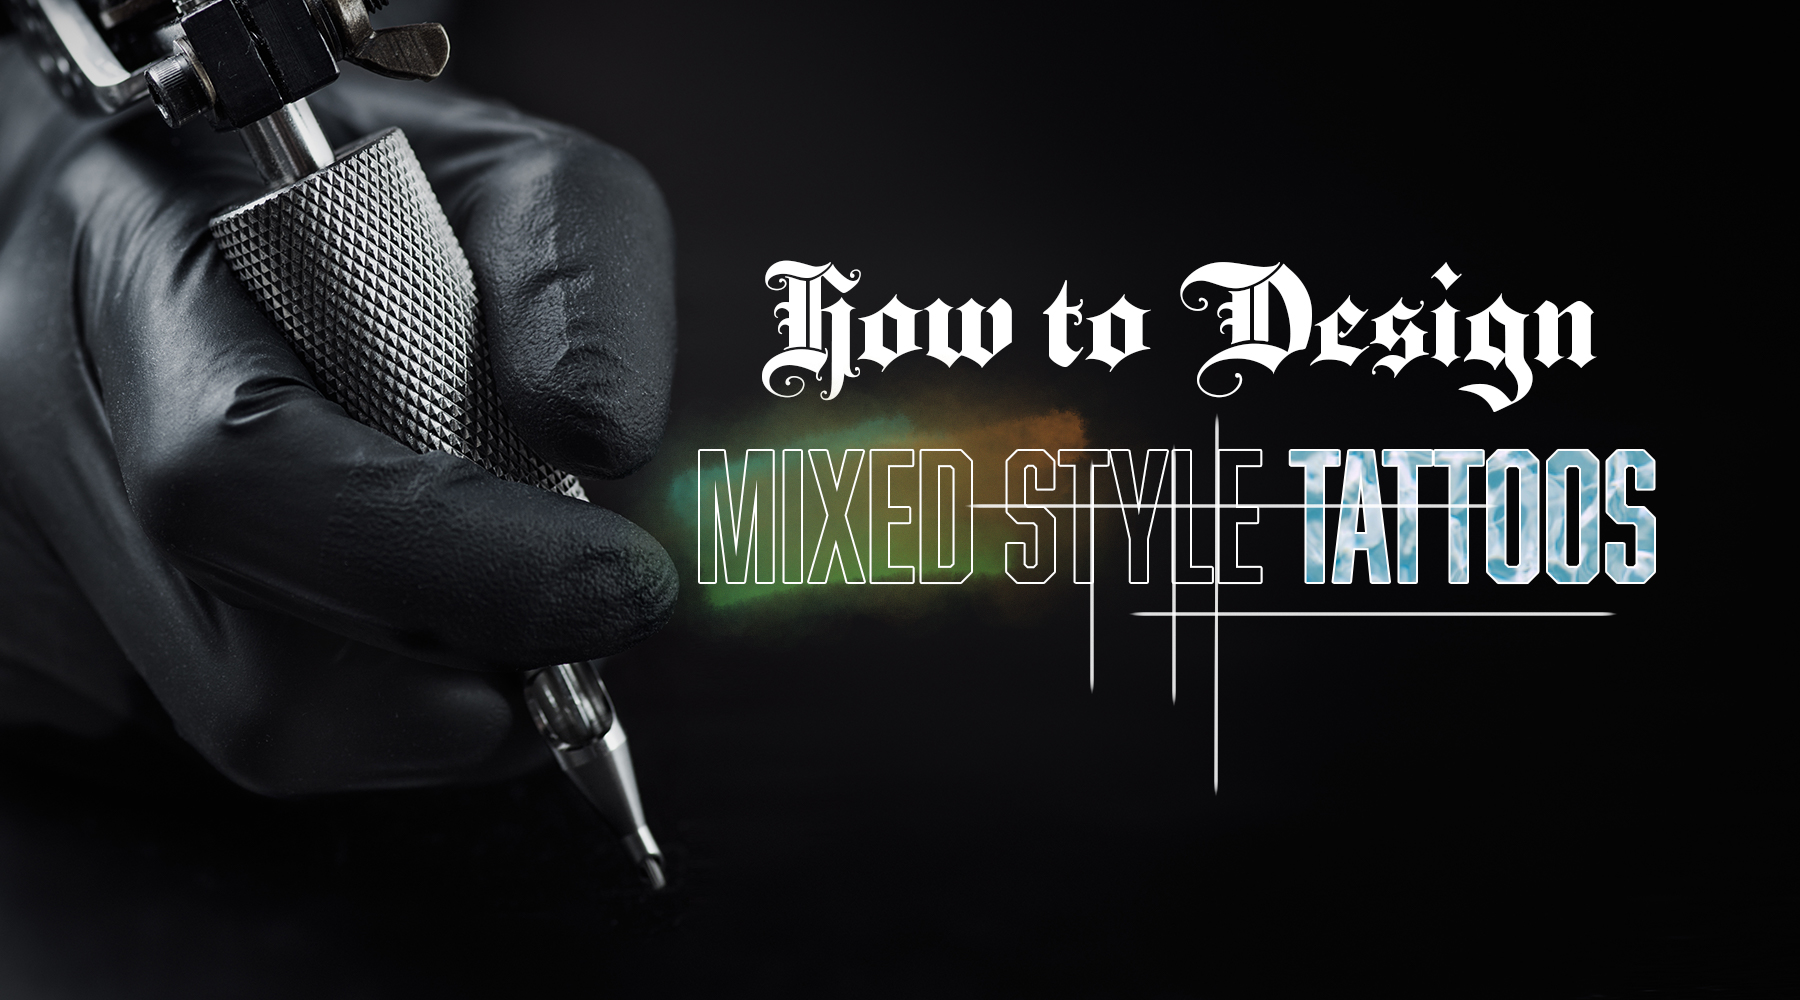 Having trouble deciding on just one tattoo style? You don't have to choose just one! Using mixed style techniques, you can have a tattoo that includes classic elements from each style you like! We loo...